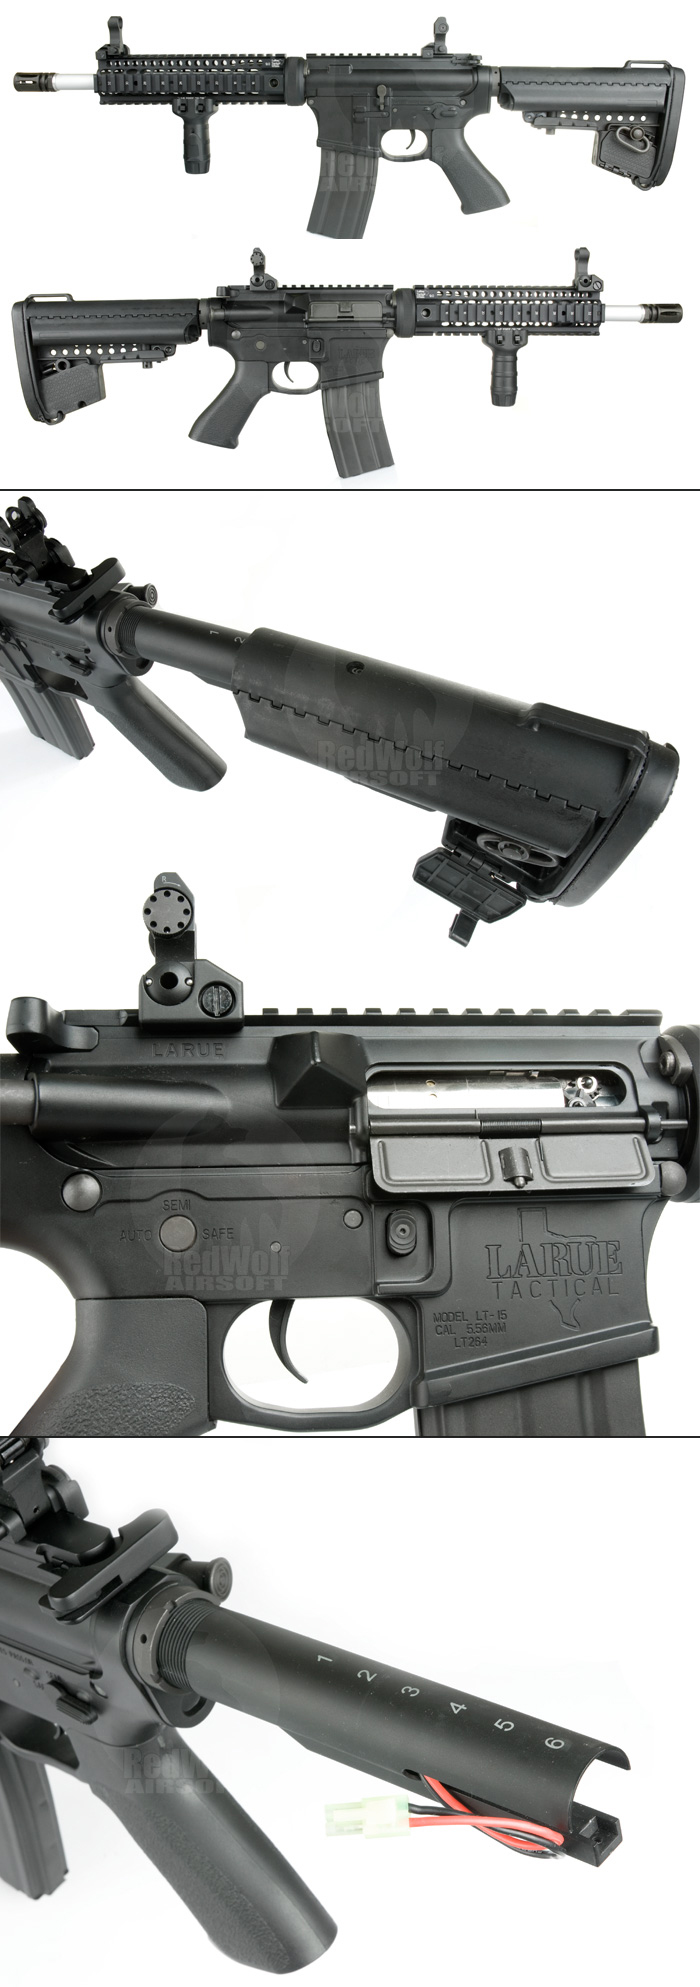 King Arms 9.0 inch LR Tactical Rifle